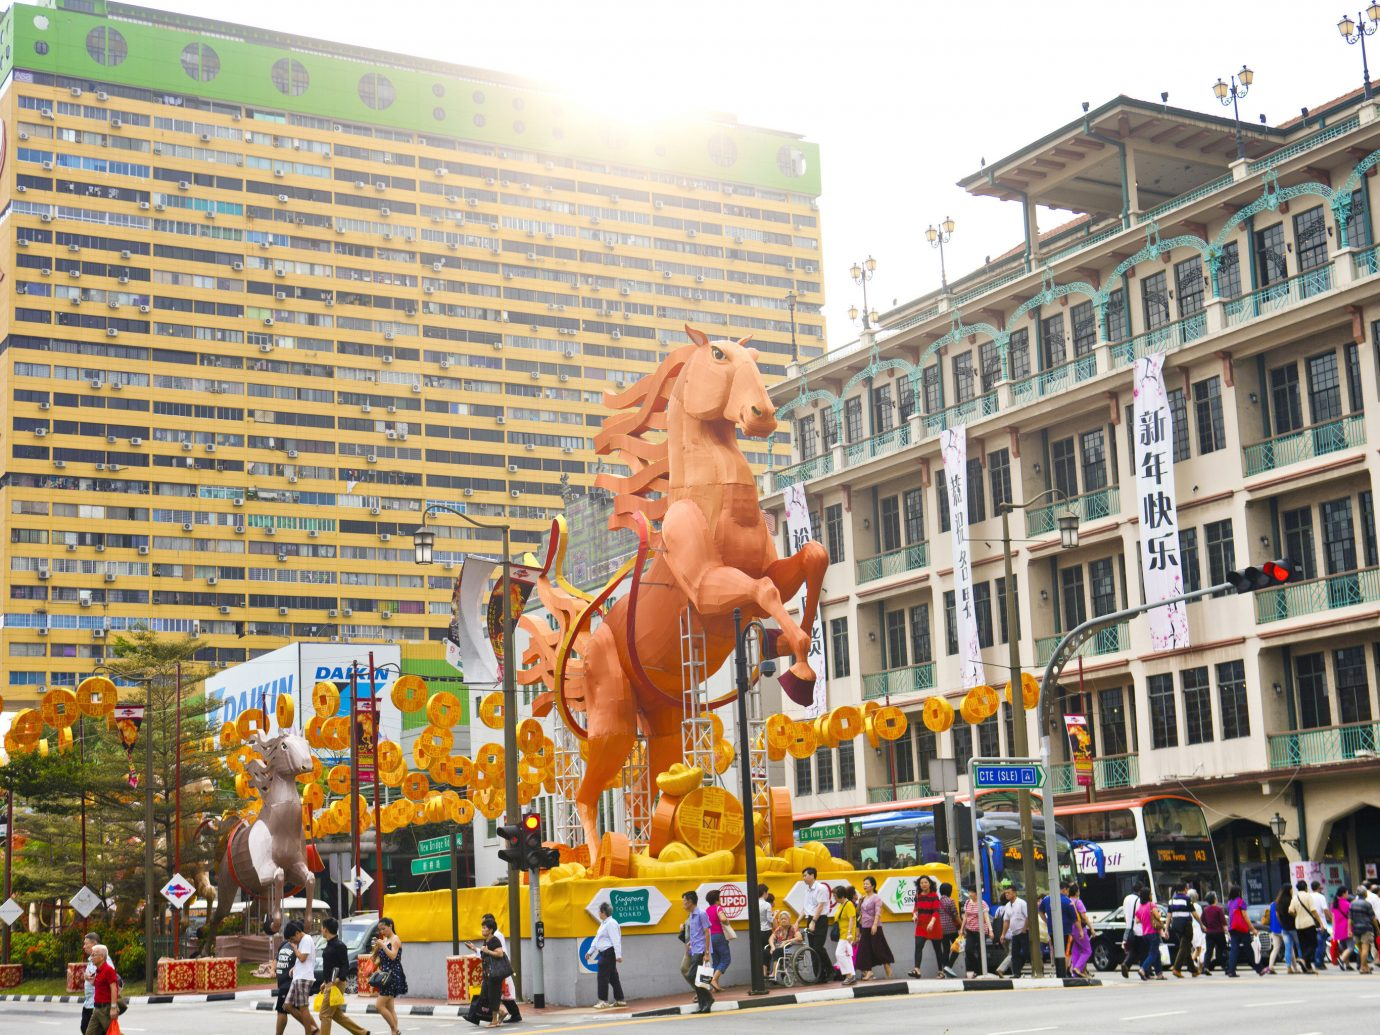 Offbeat Singapore Trip Ideas building outdoor plaza art advertising crowd